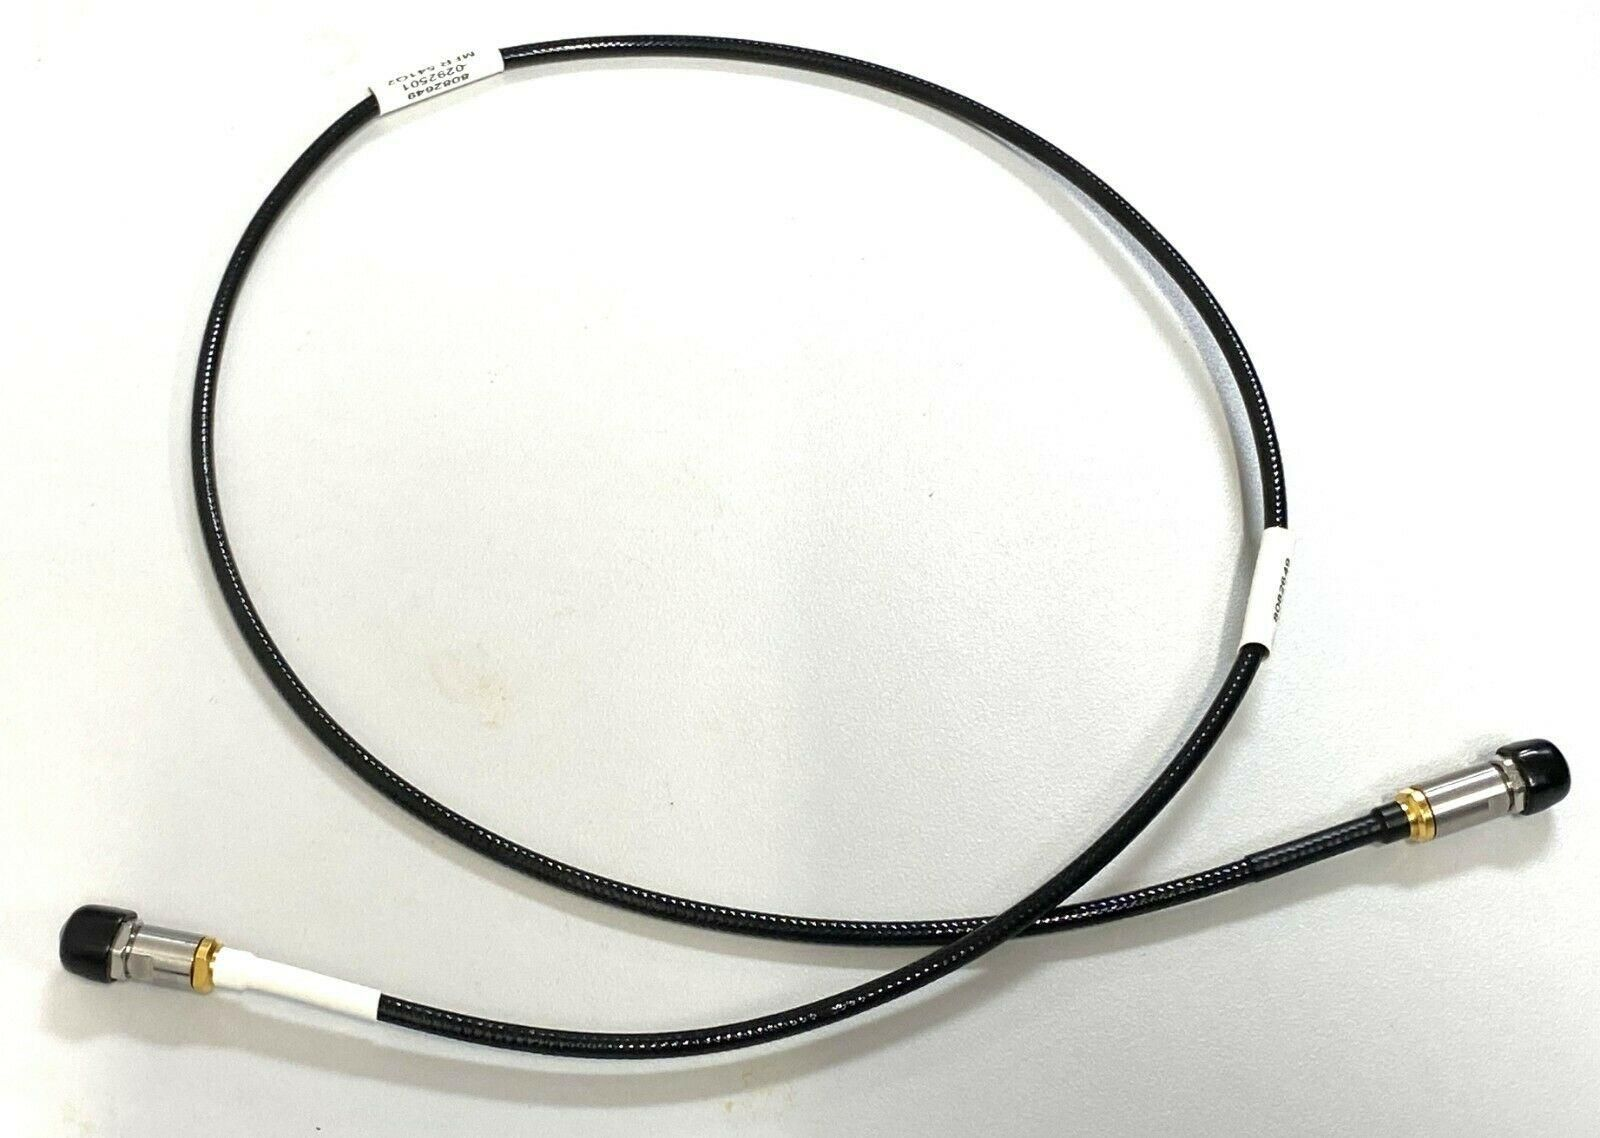 """GORE SMA ZN1 TO SMA ZMQ 29.3"""" CABLE 56ZN1ZMQ0293 56 SPACEFLIGHT CABLE"""